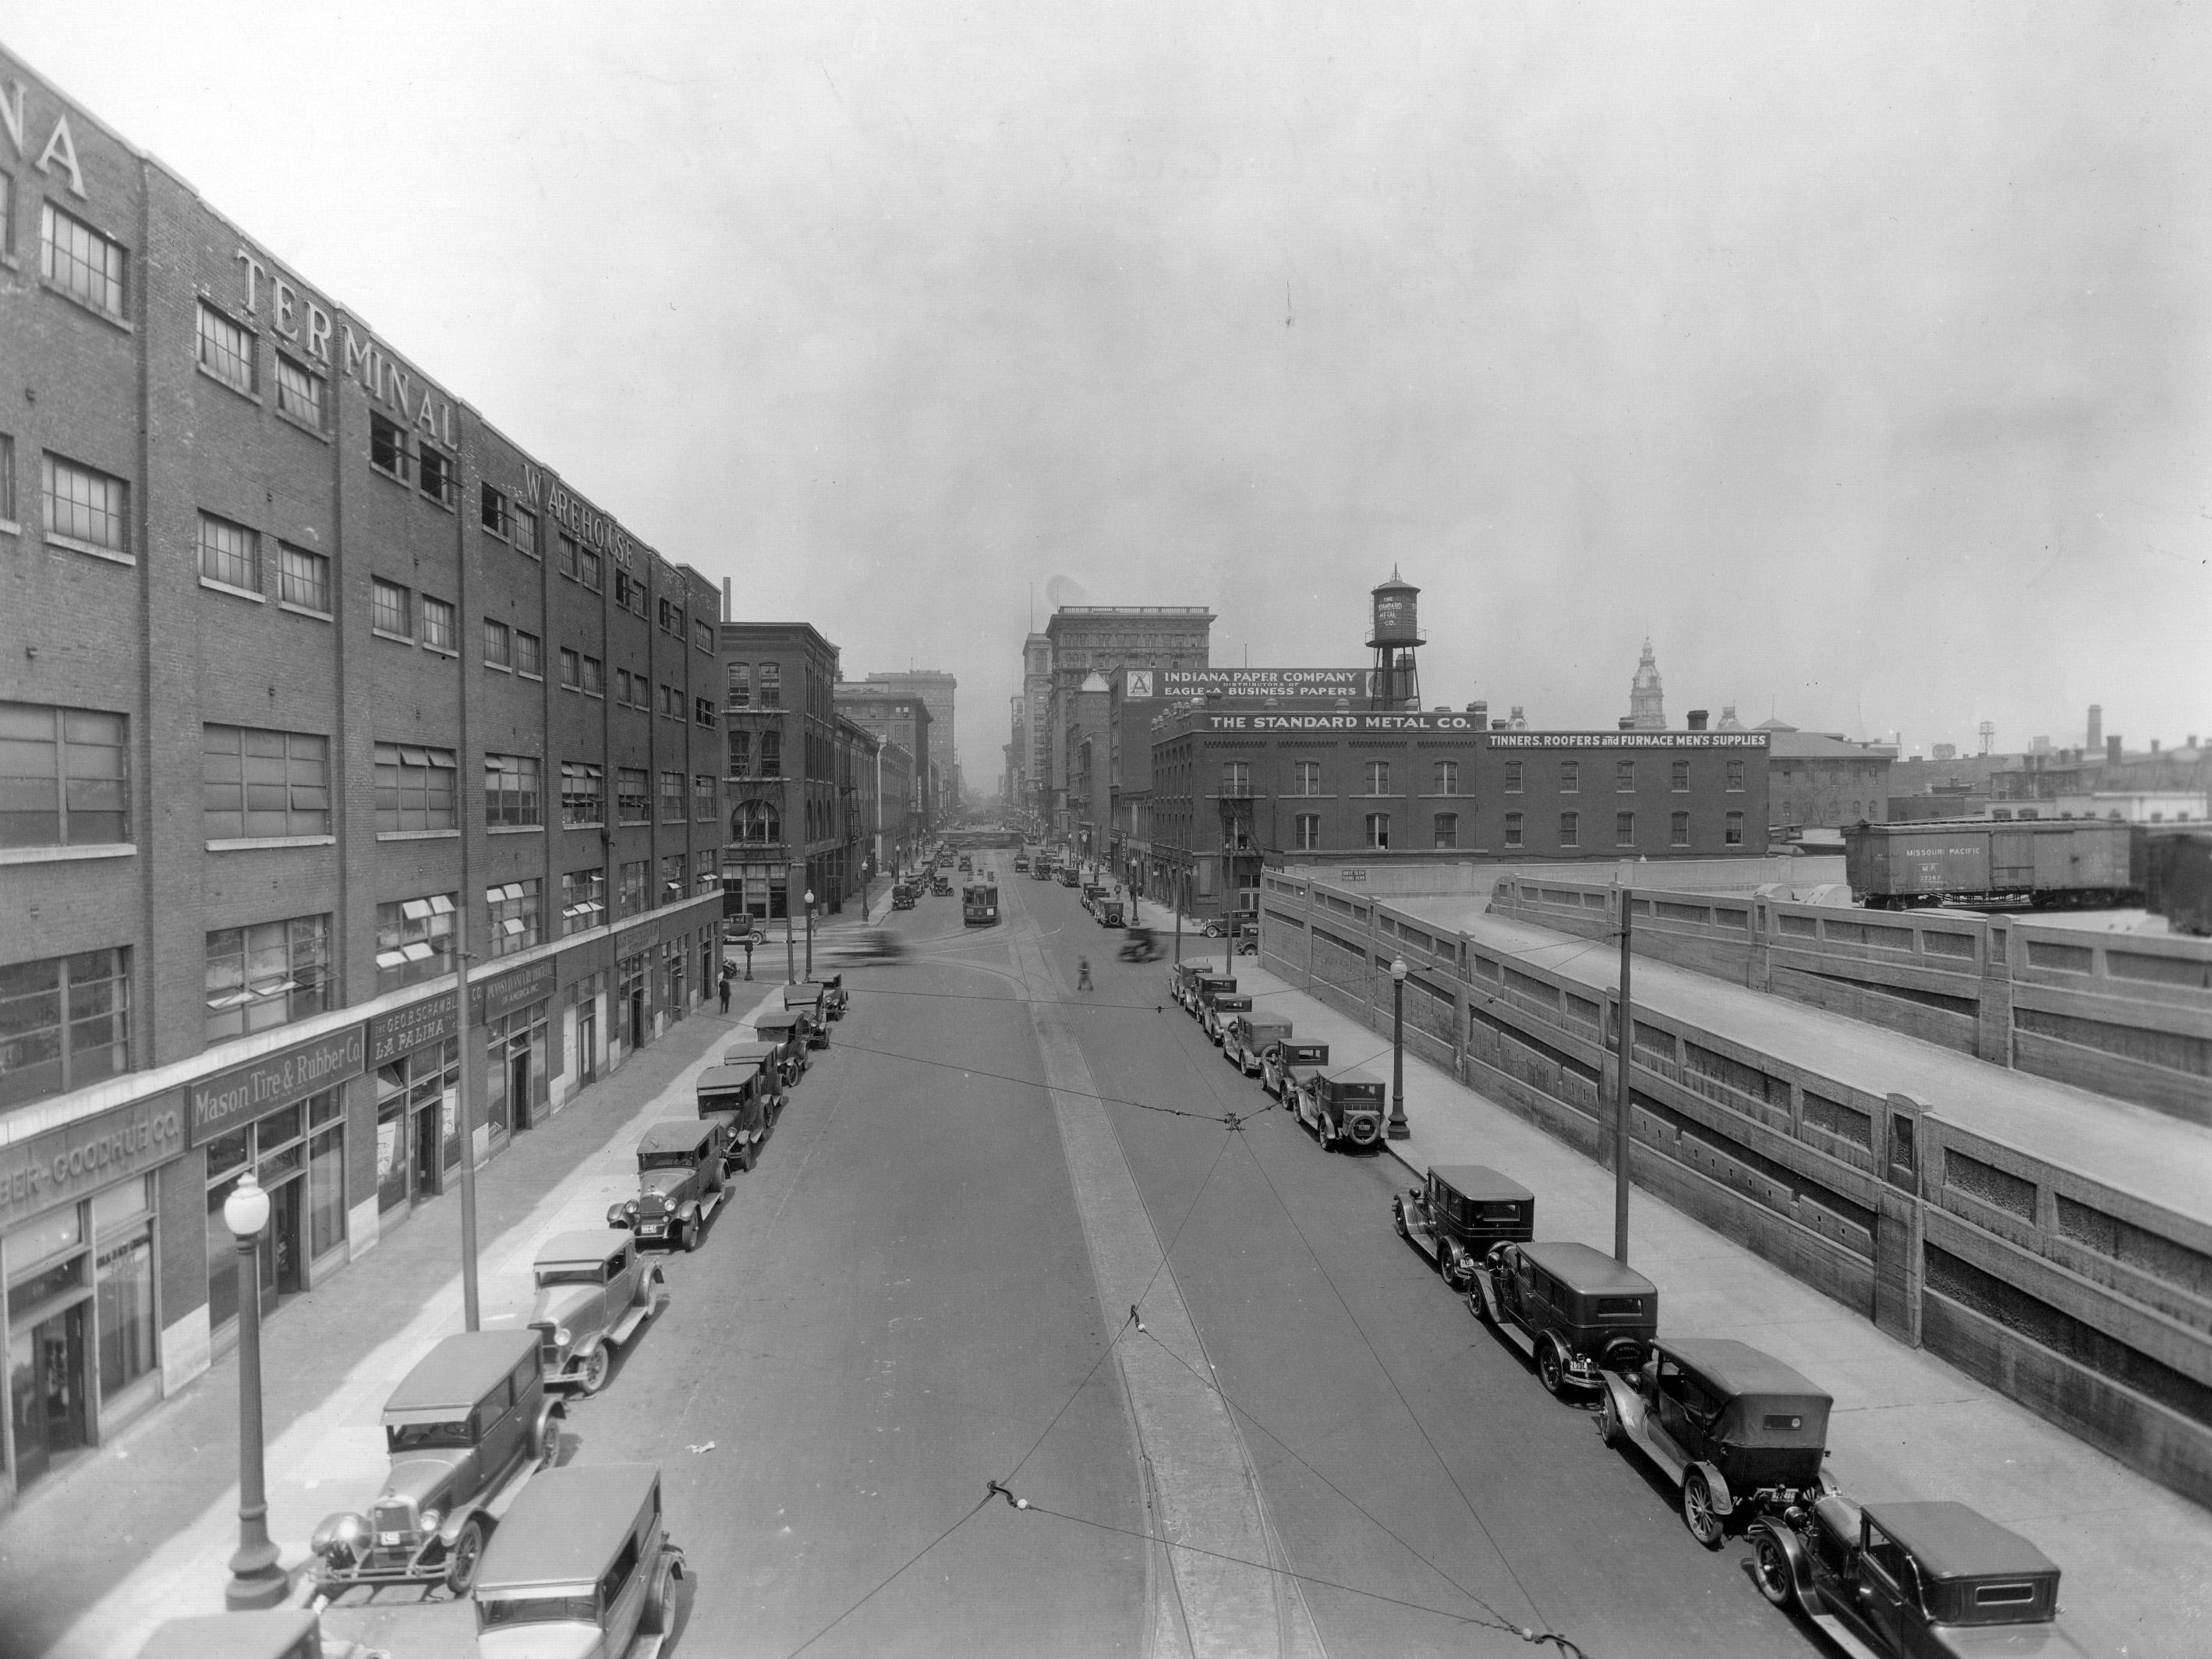 South Pennsylvania St looking north from the elevated railroad tracks. Date unknown, but possibly the 1920s.